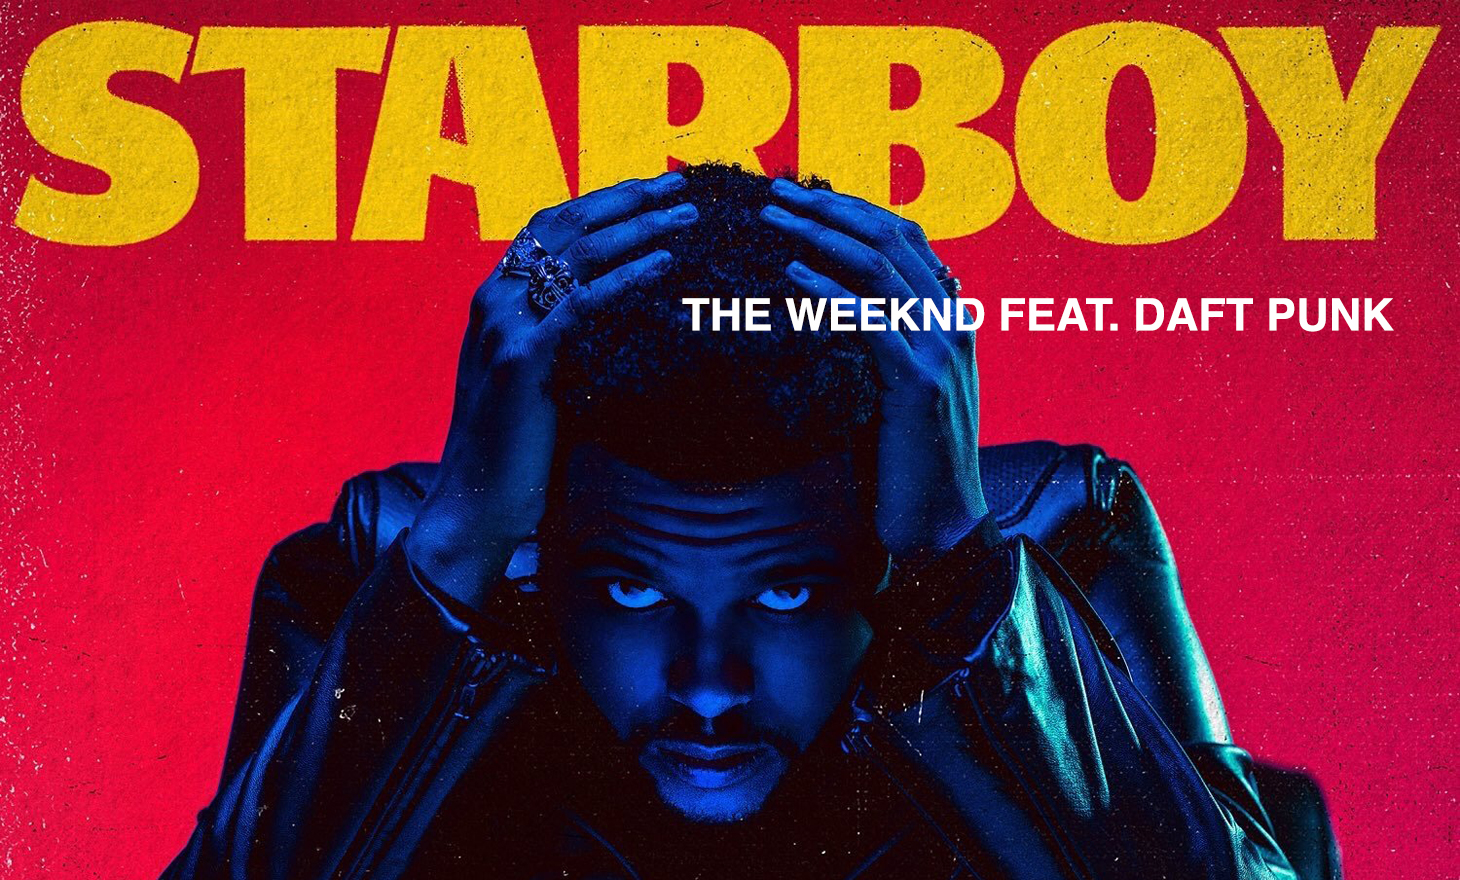 The Weeknd Starboy feat. Daft Punk